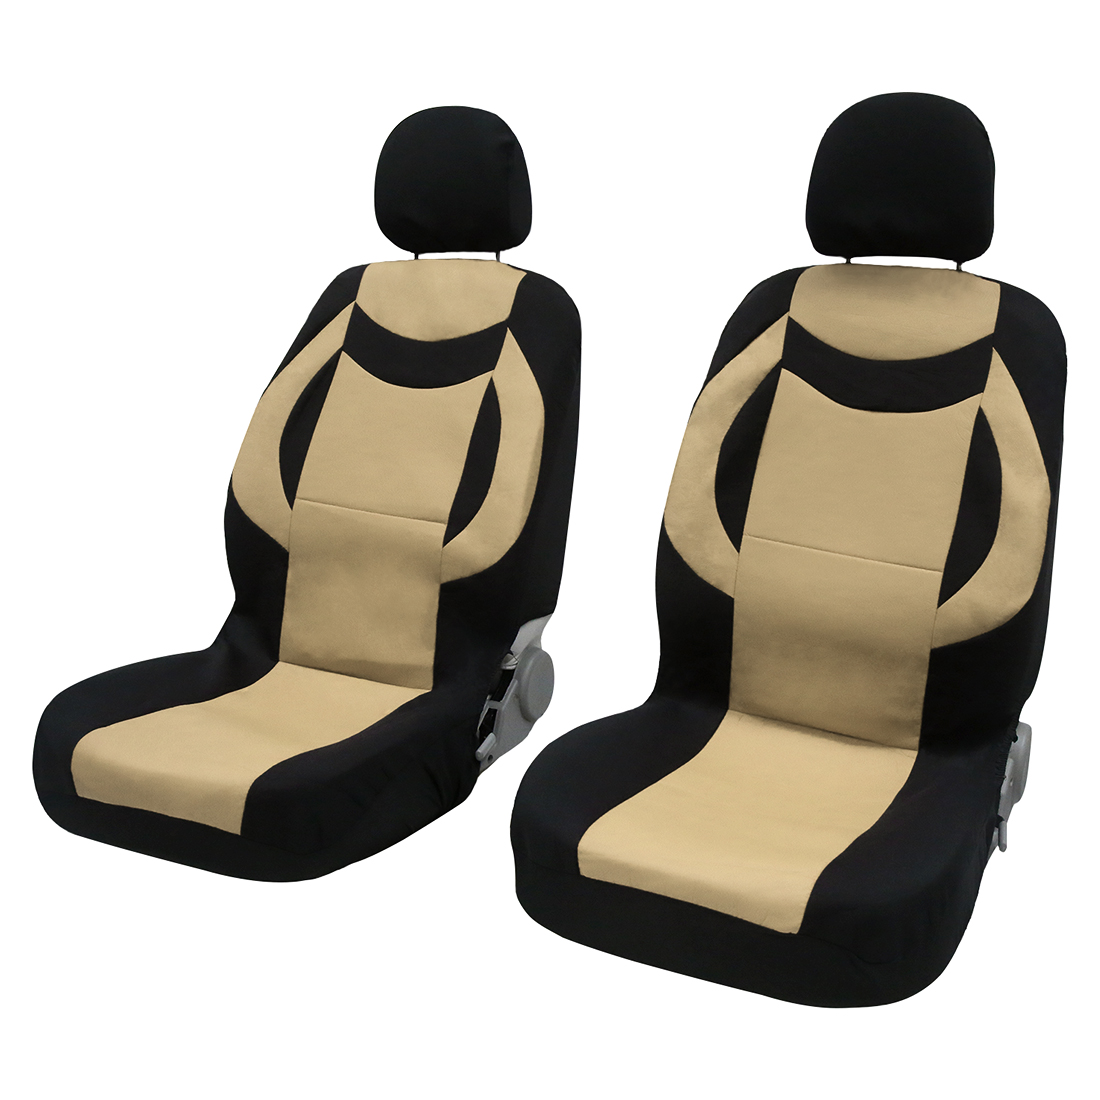 8pcs PU Leather Auto Interior Accessories Car Seat Covers full set Beige